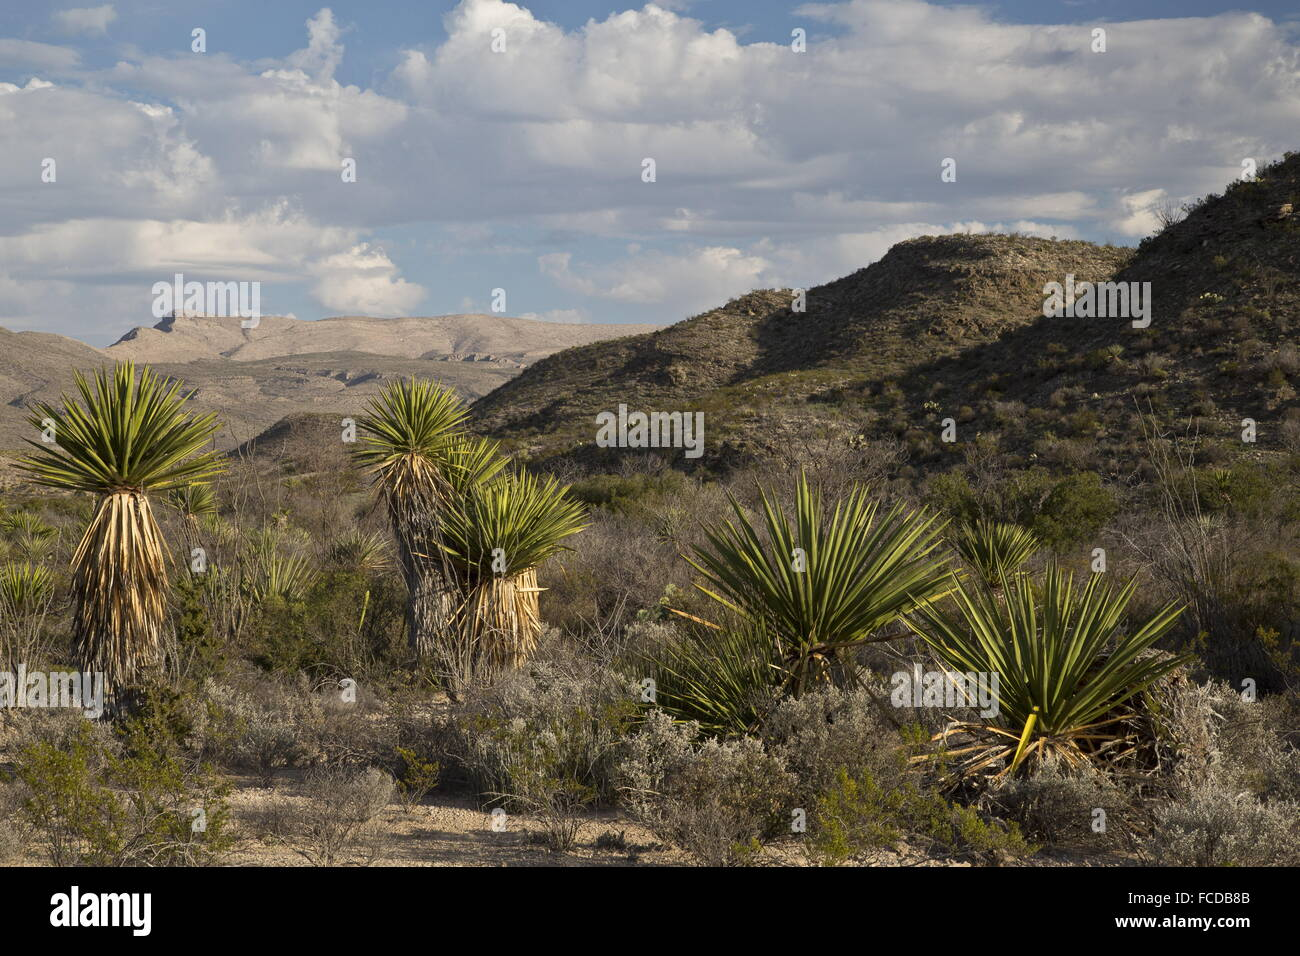 Spanish dagger or Torrey Yucca, Yucca faxoniana, on Dagger Flats, with Deadhorse Mountains beyond; Big Bend National - Stock Image